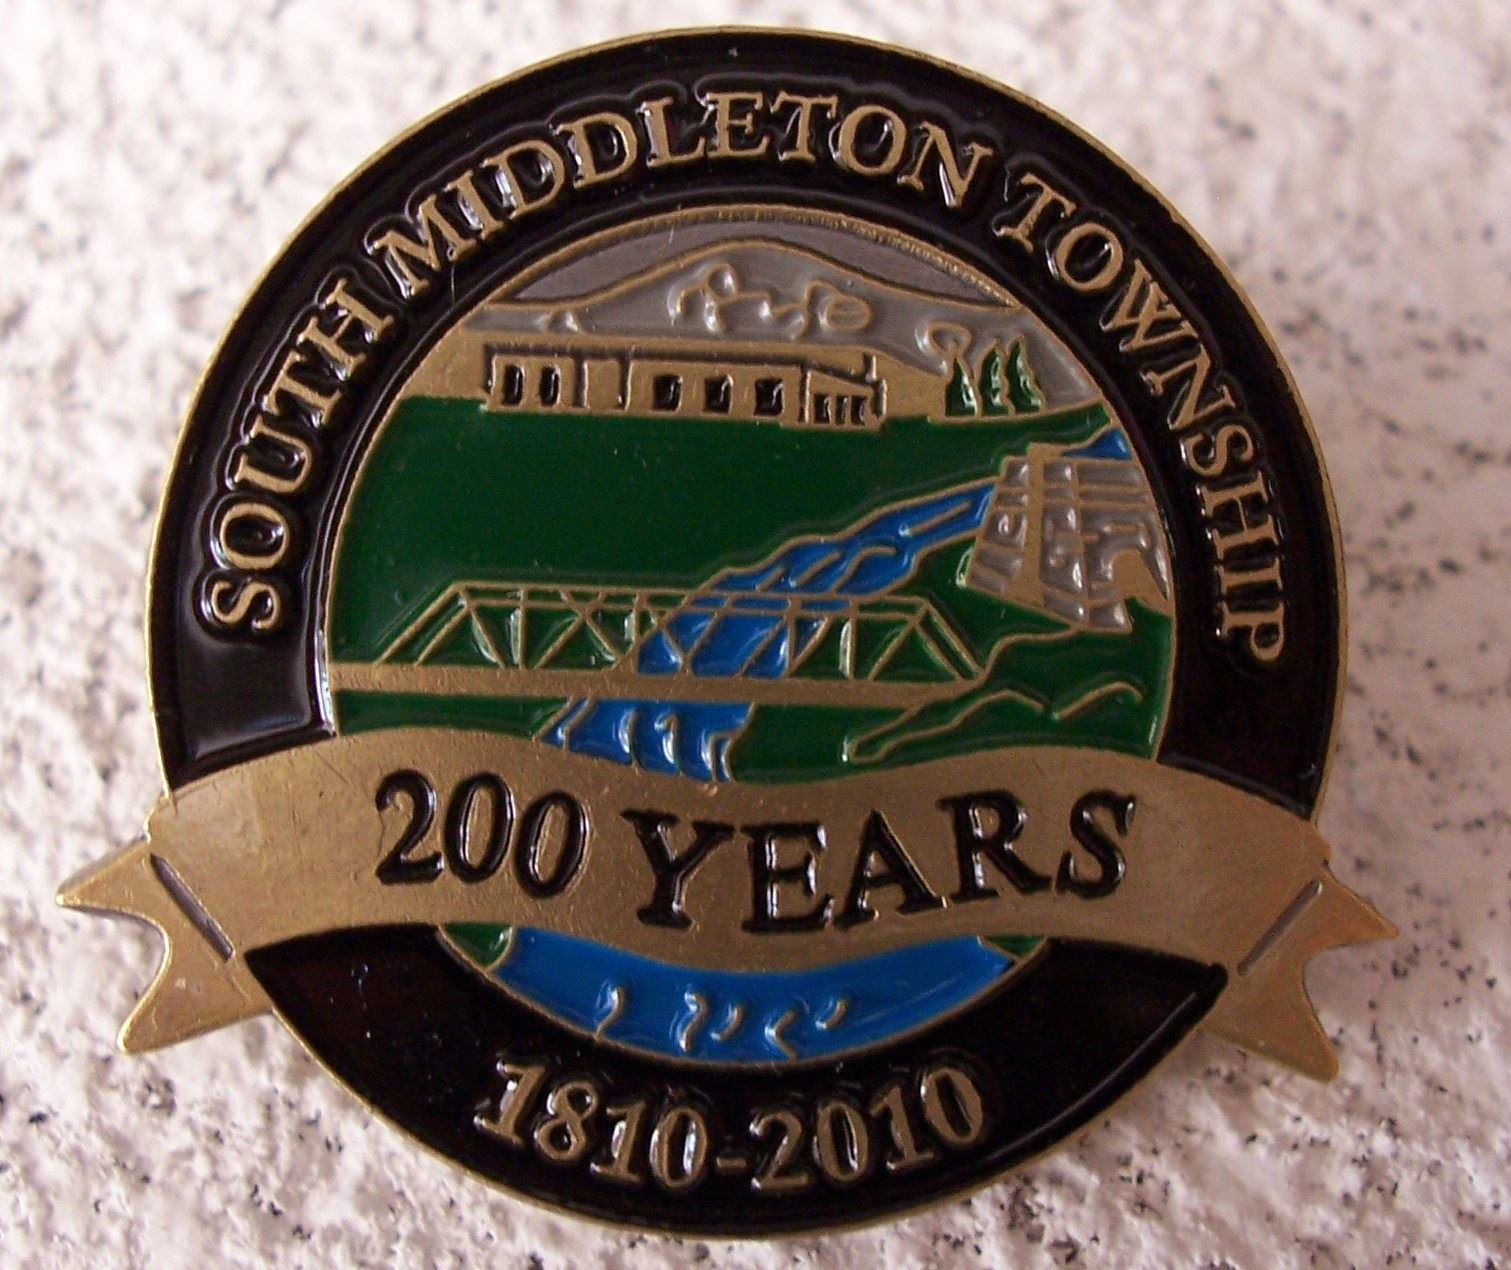 South Middleton Bicentennial Pin